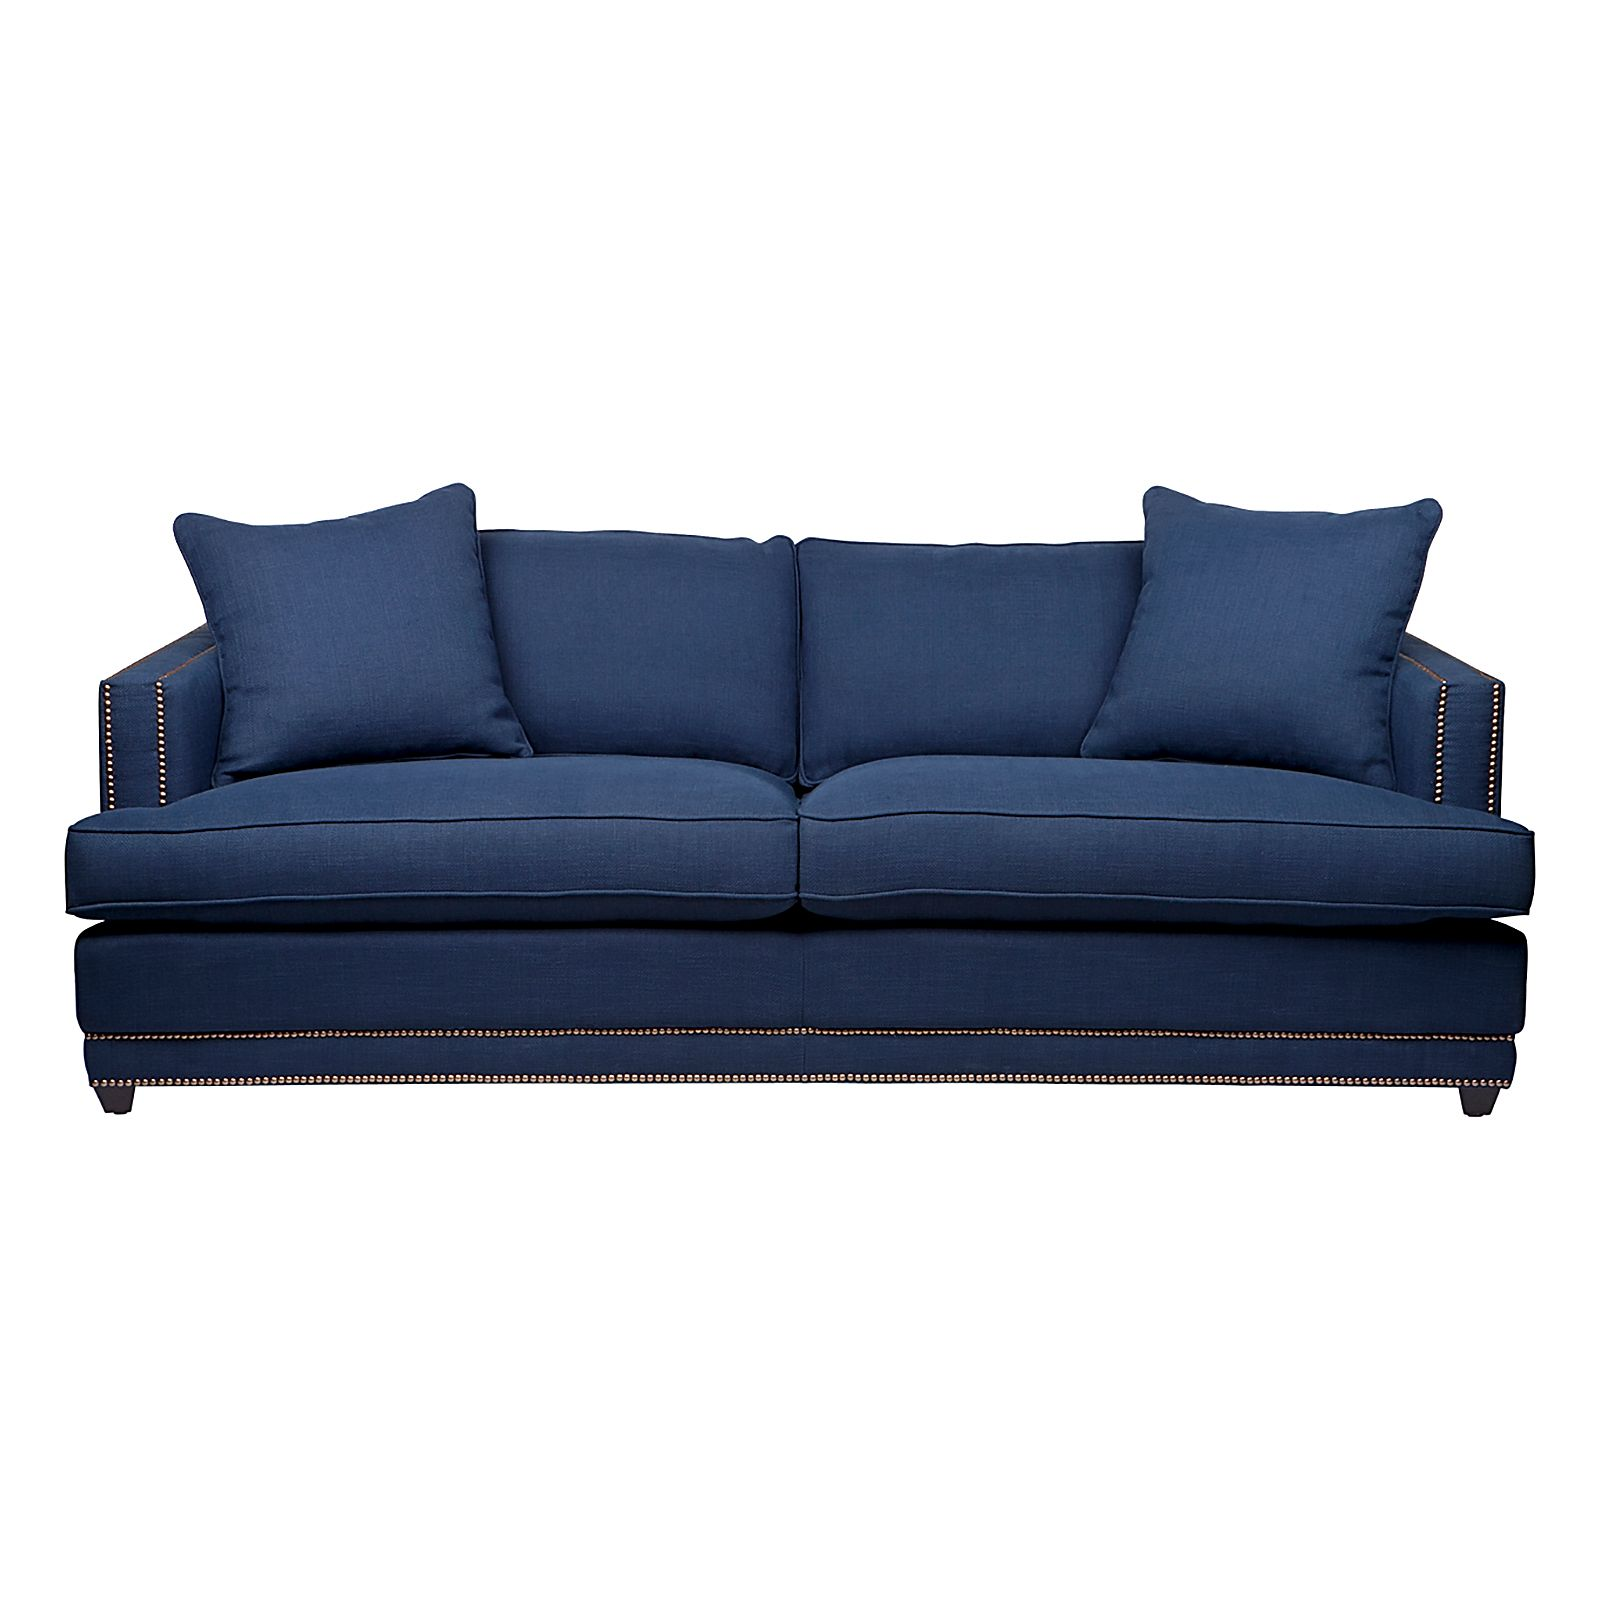 DARLINGTON SOFA